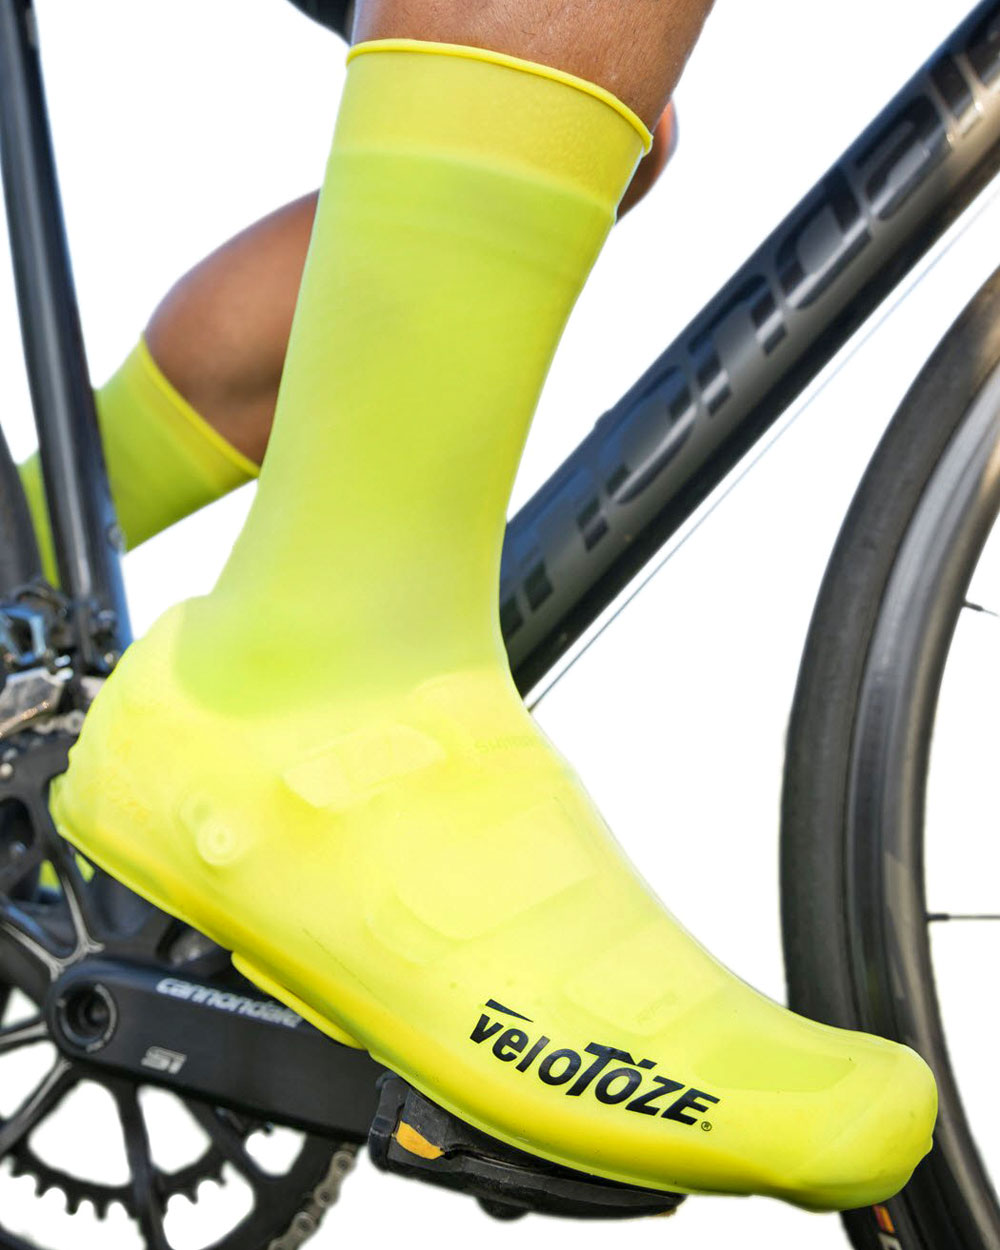 VeloToze Tall Shoe Covers Silicone, easy on and off windproof waterproof synthetic rubber road bike shoe covers with snaps